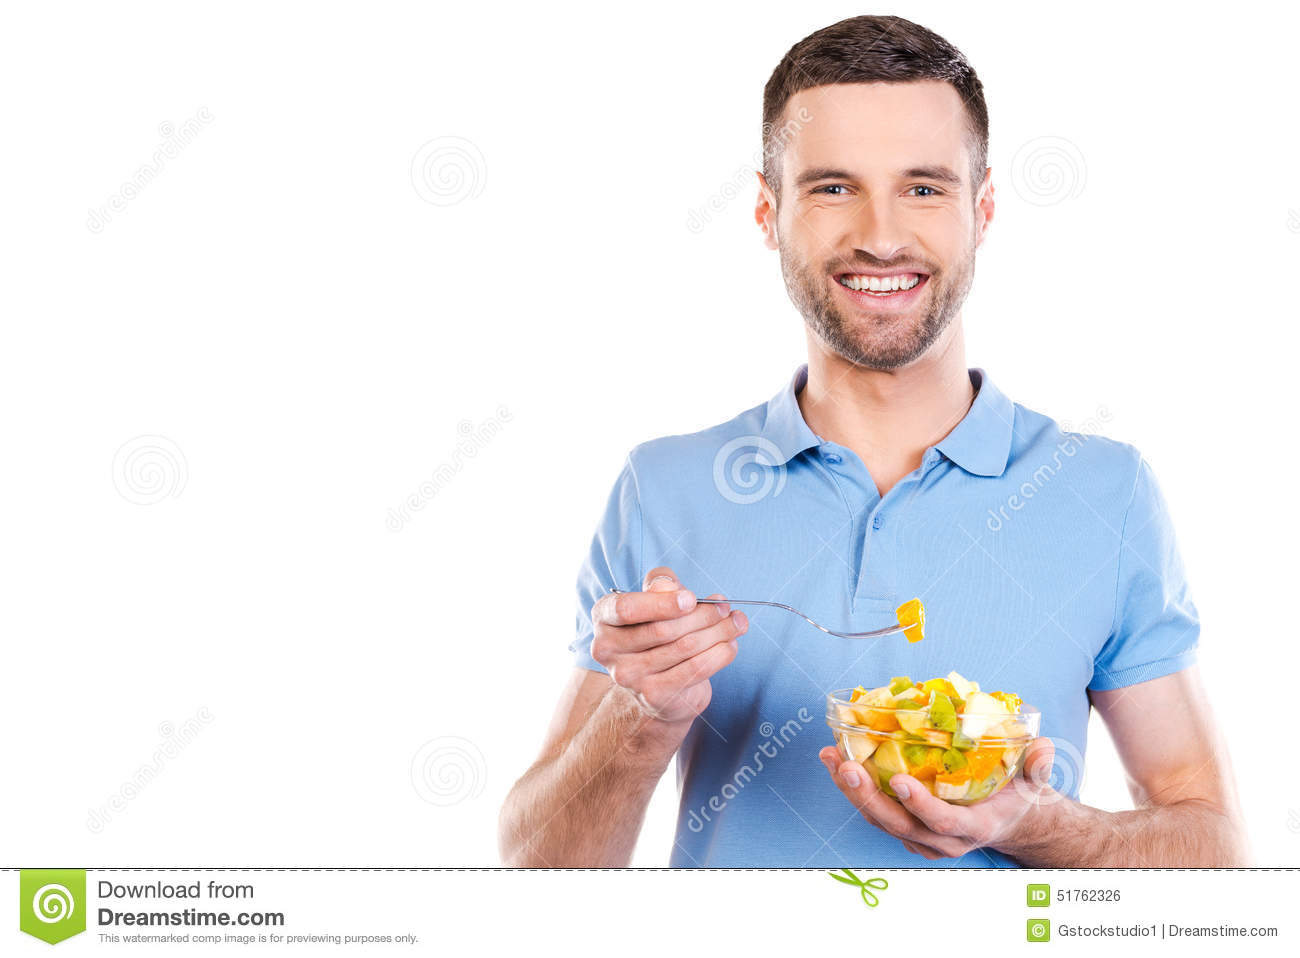 Consuming unhealhy food against healthy food